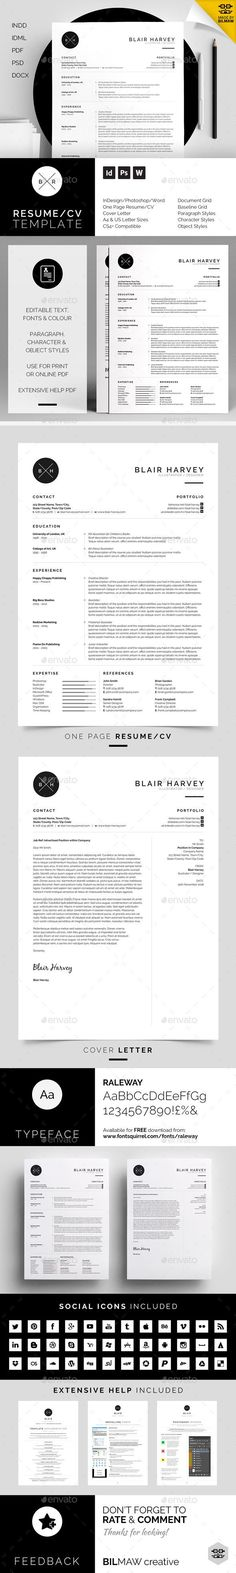 Free Simple Resume Template Me Likey! Pinterest Simple resume - copy free resume templates for libreoffice